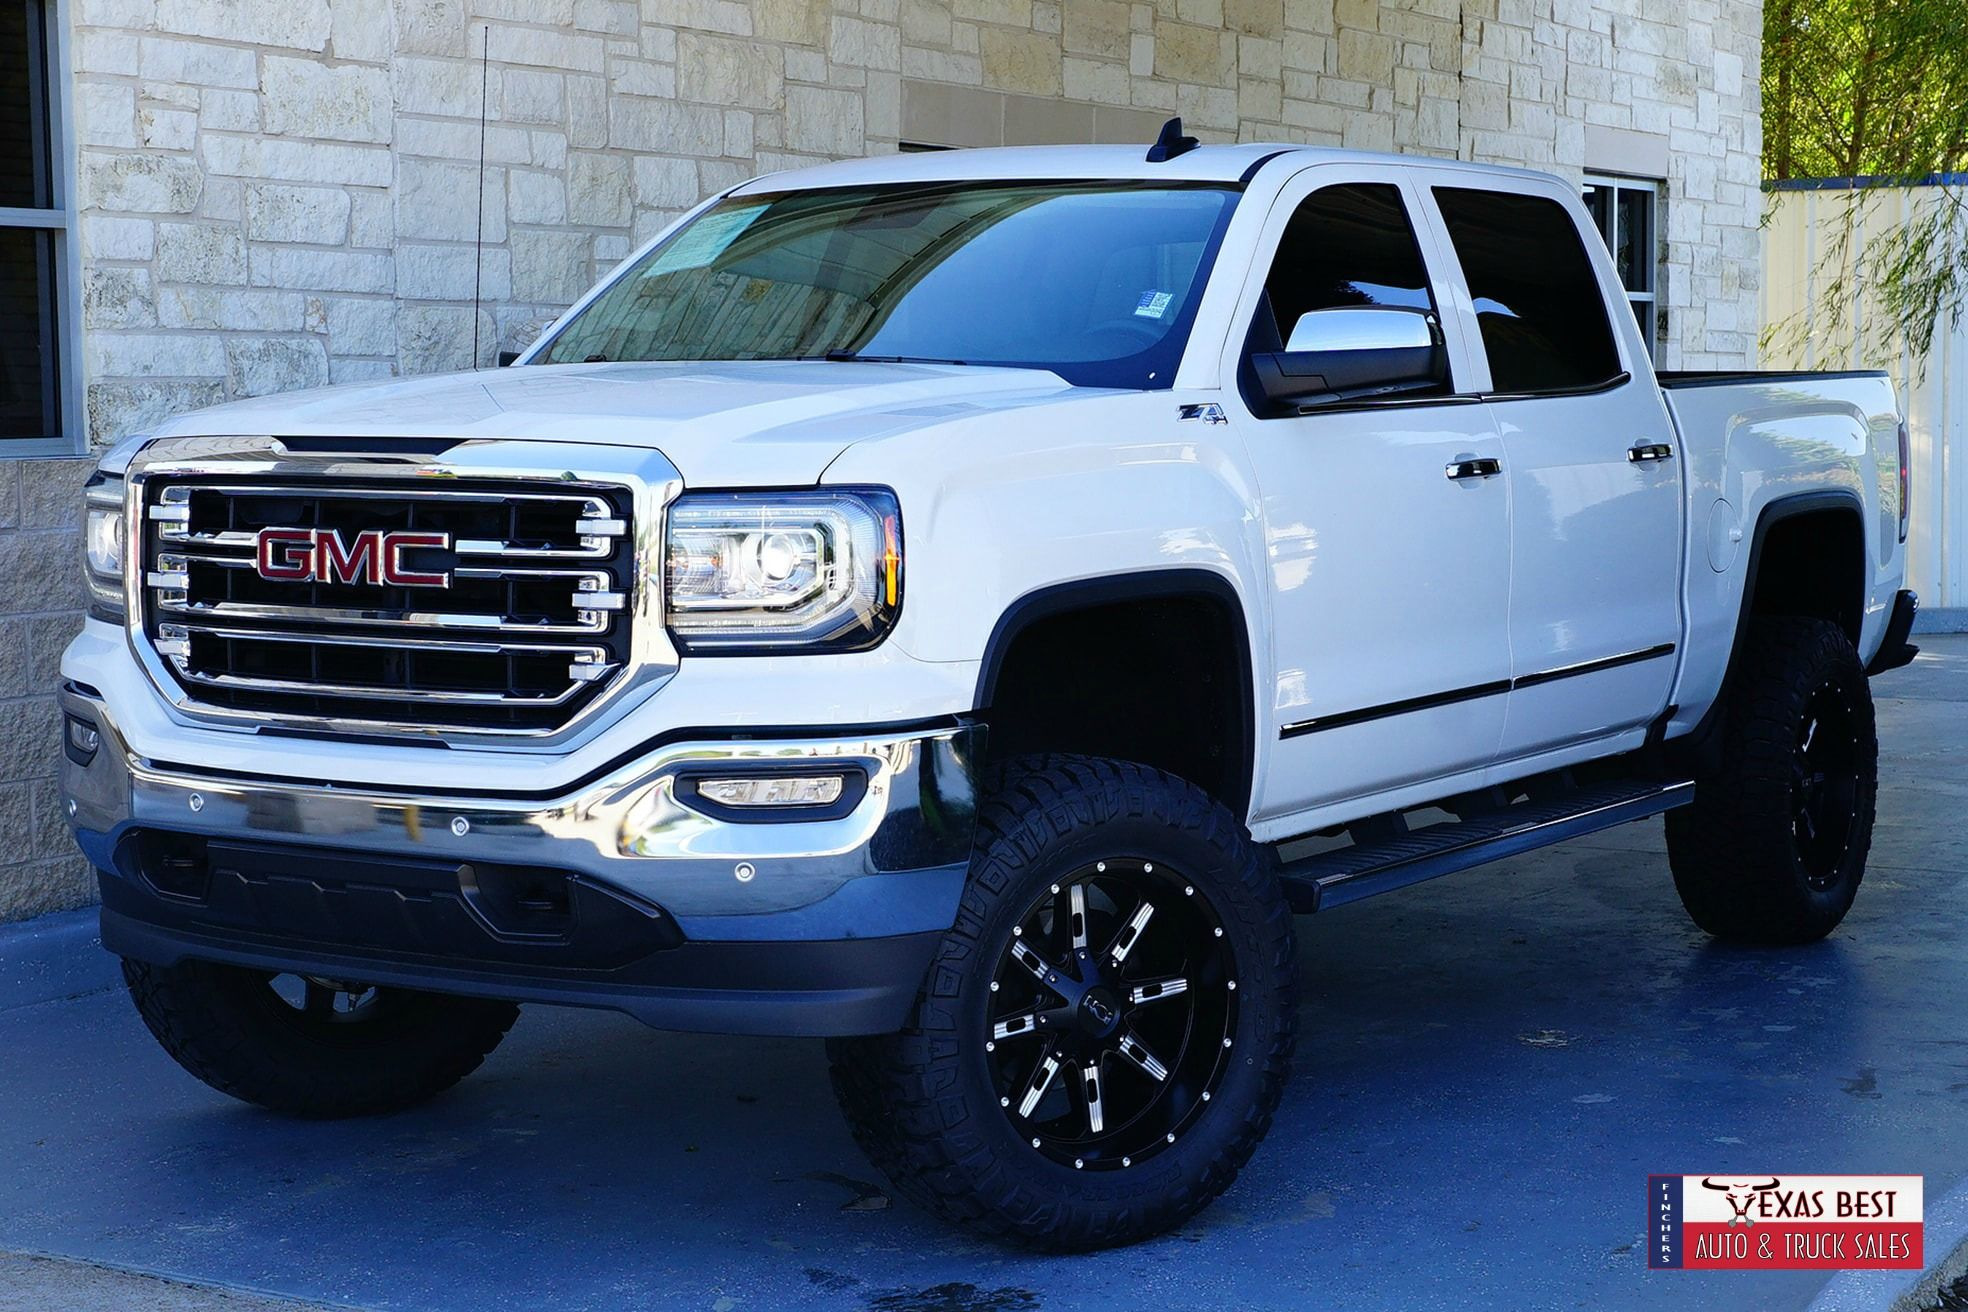 Brand New Lift Wheels And Tires 2018 Gmc Sierra 1500 Slt For